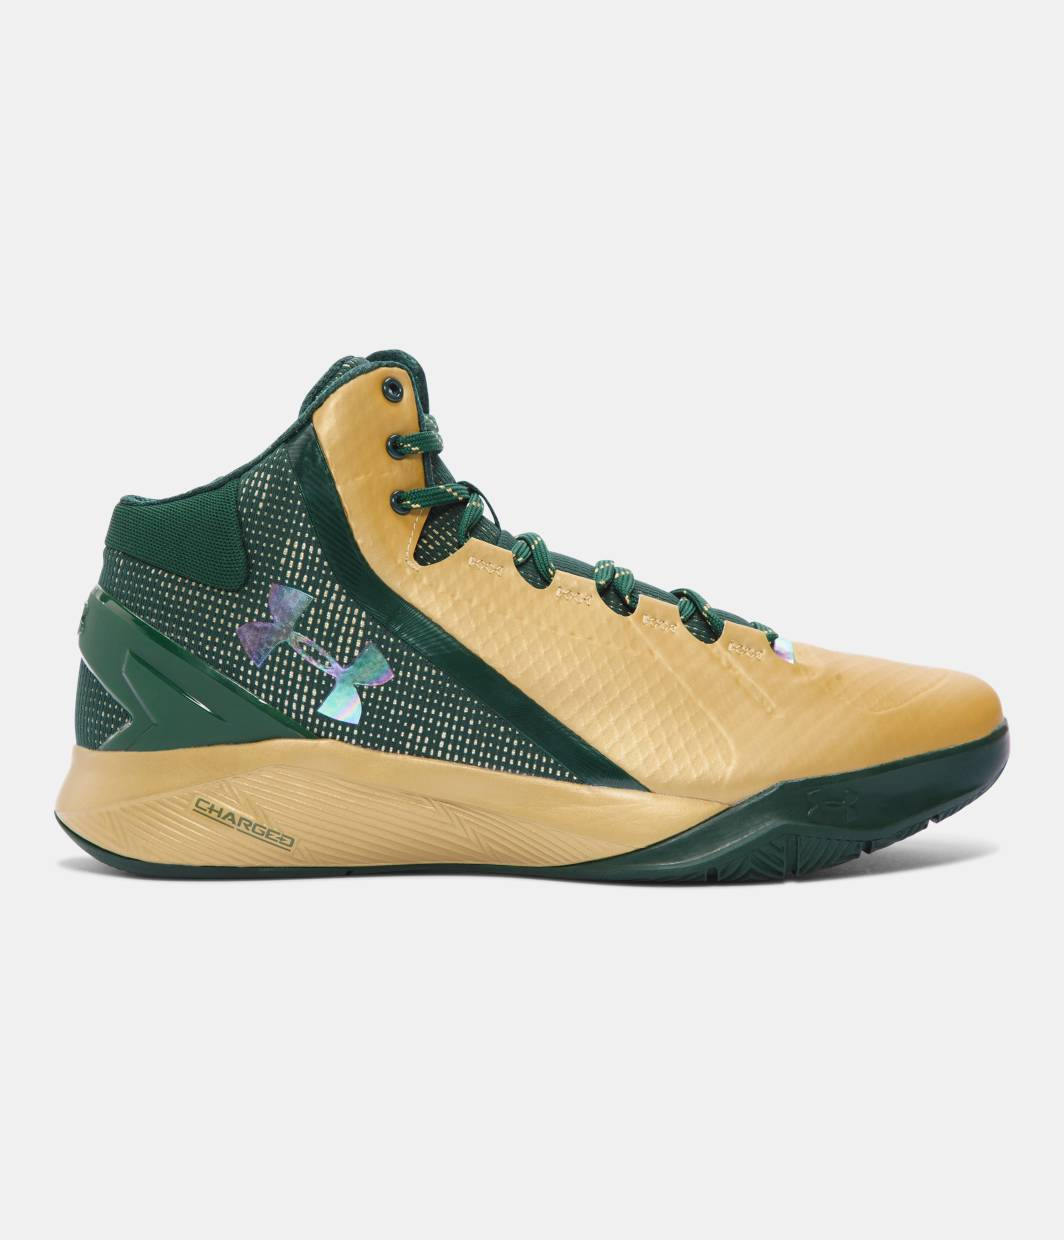 Men's UA Charged Step Back Team Basketball Shoes | Under Armour US